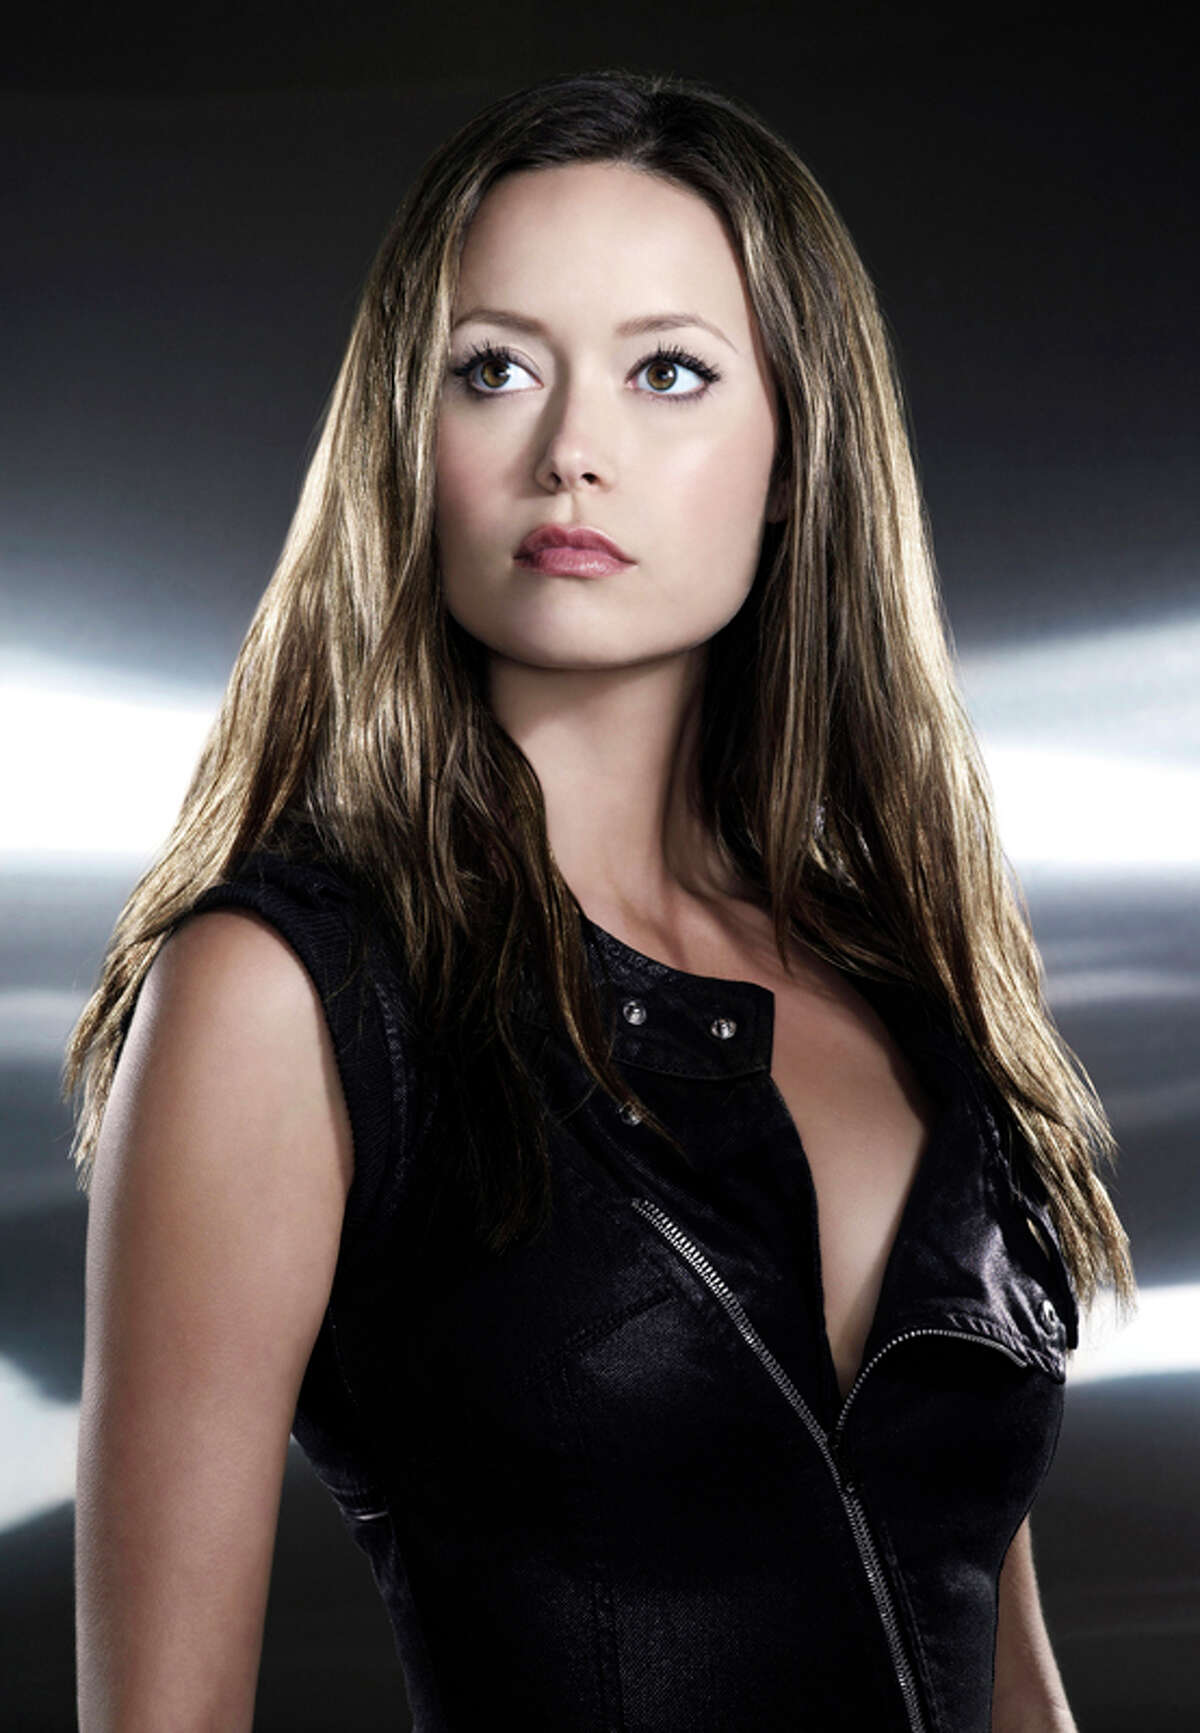 Summer Glau, who stars in